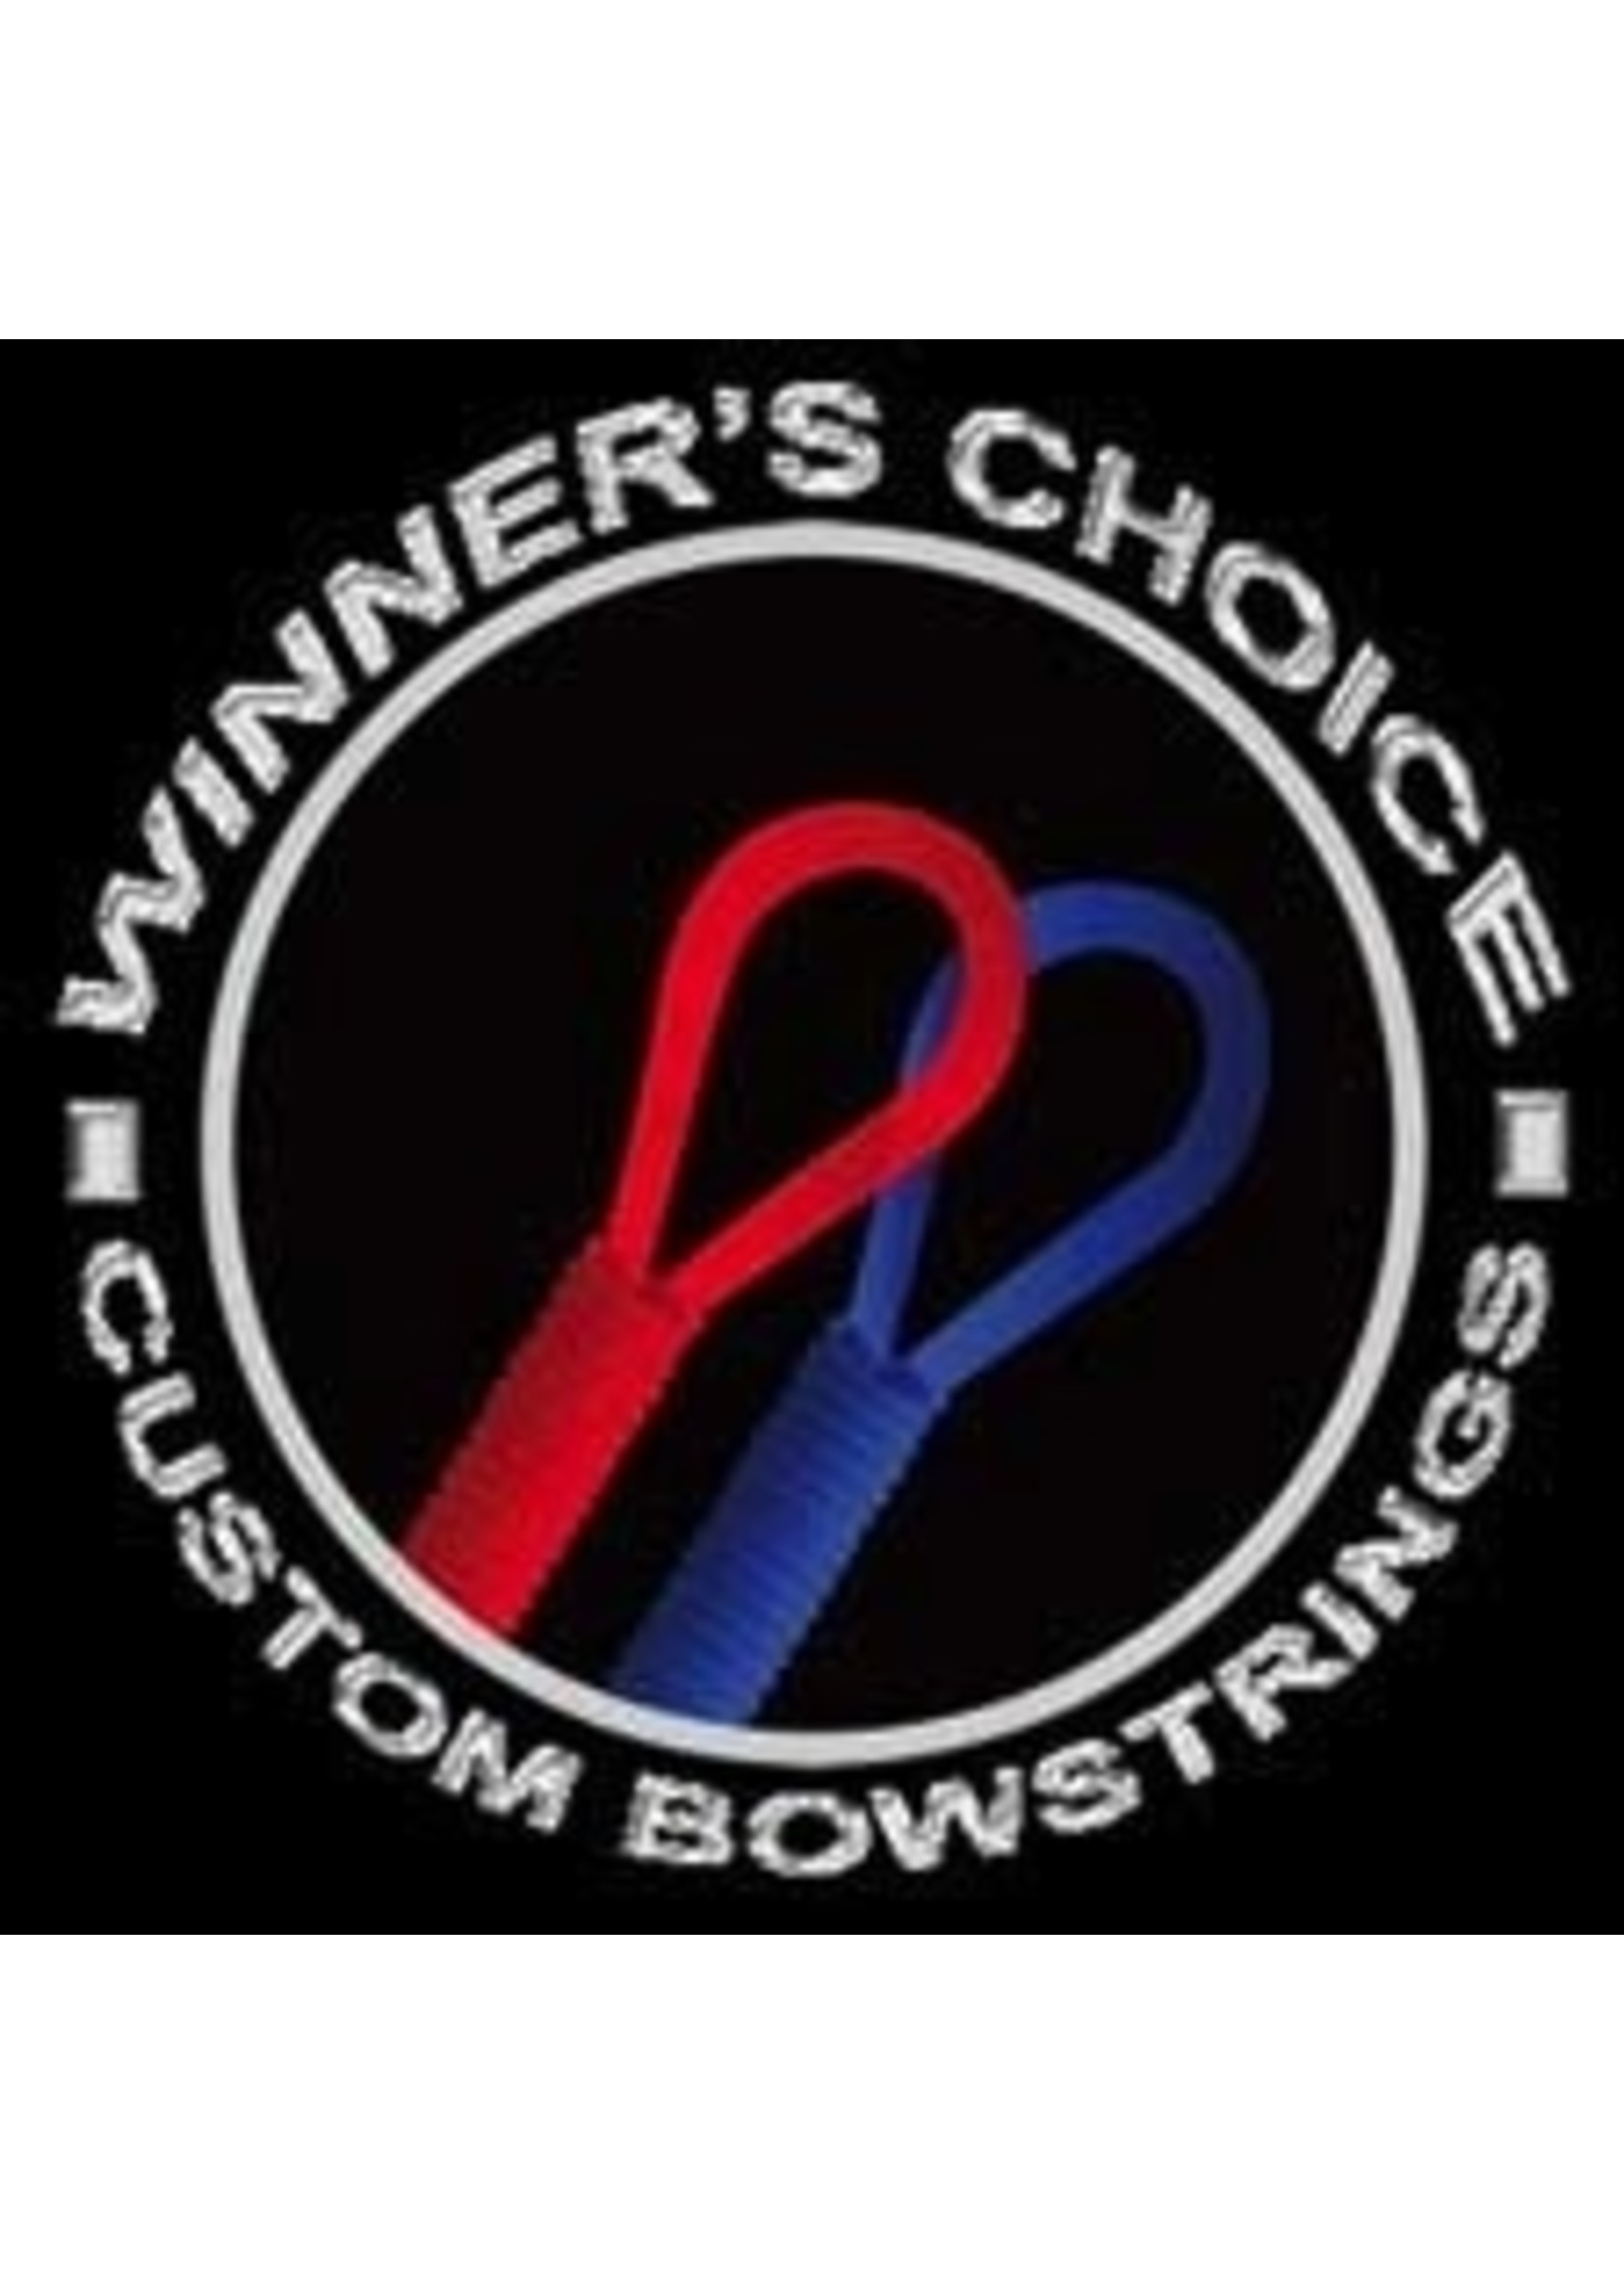 Winners Choice Winners Choice Set for Compound Bow